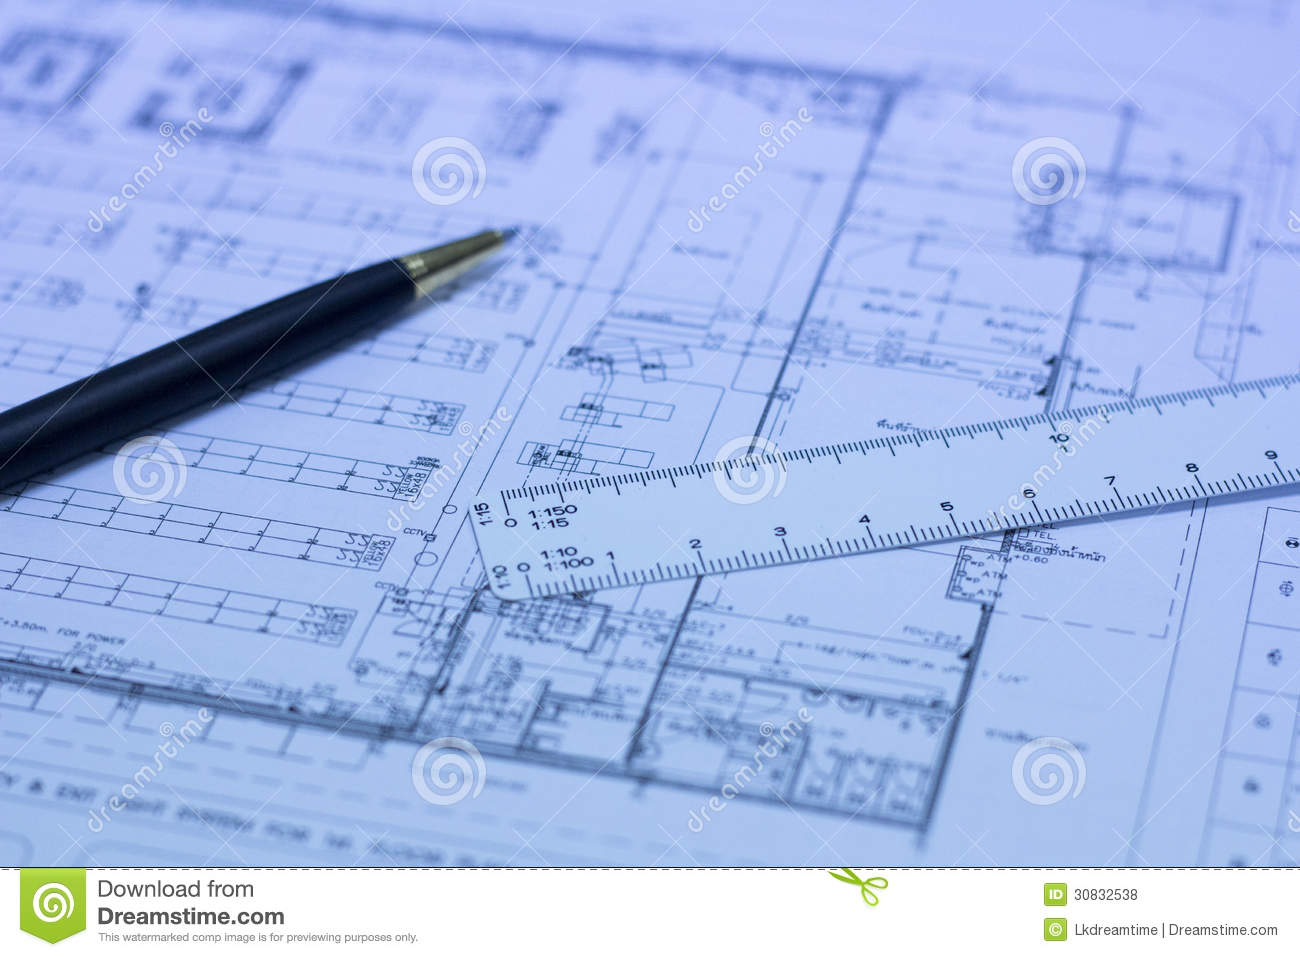 Pen scale ruler and blueprint royalty free stock photos for Blueprint scale